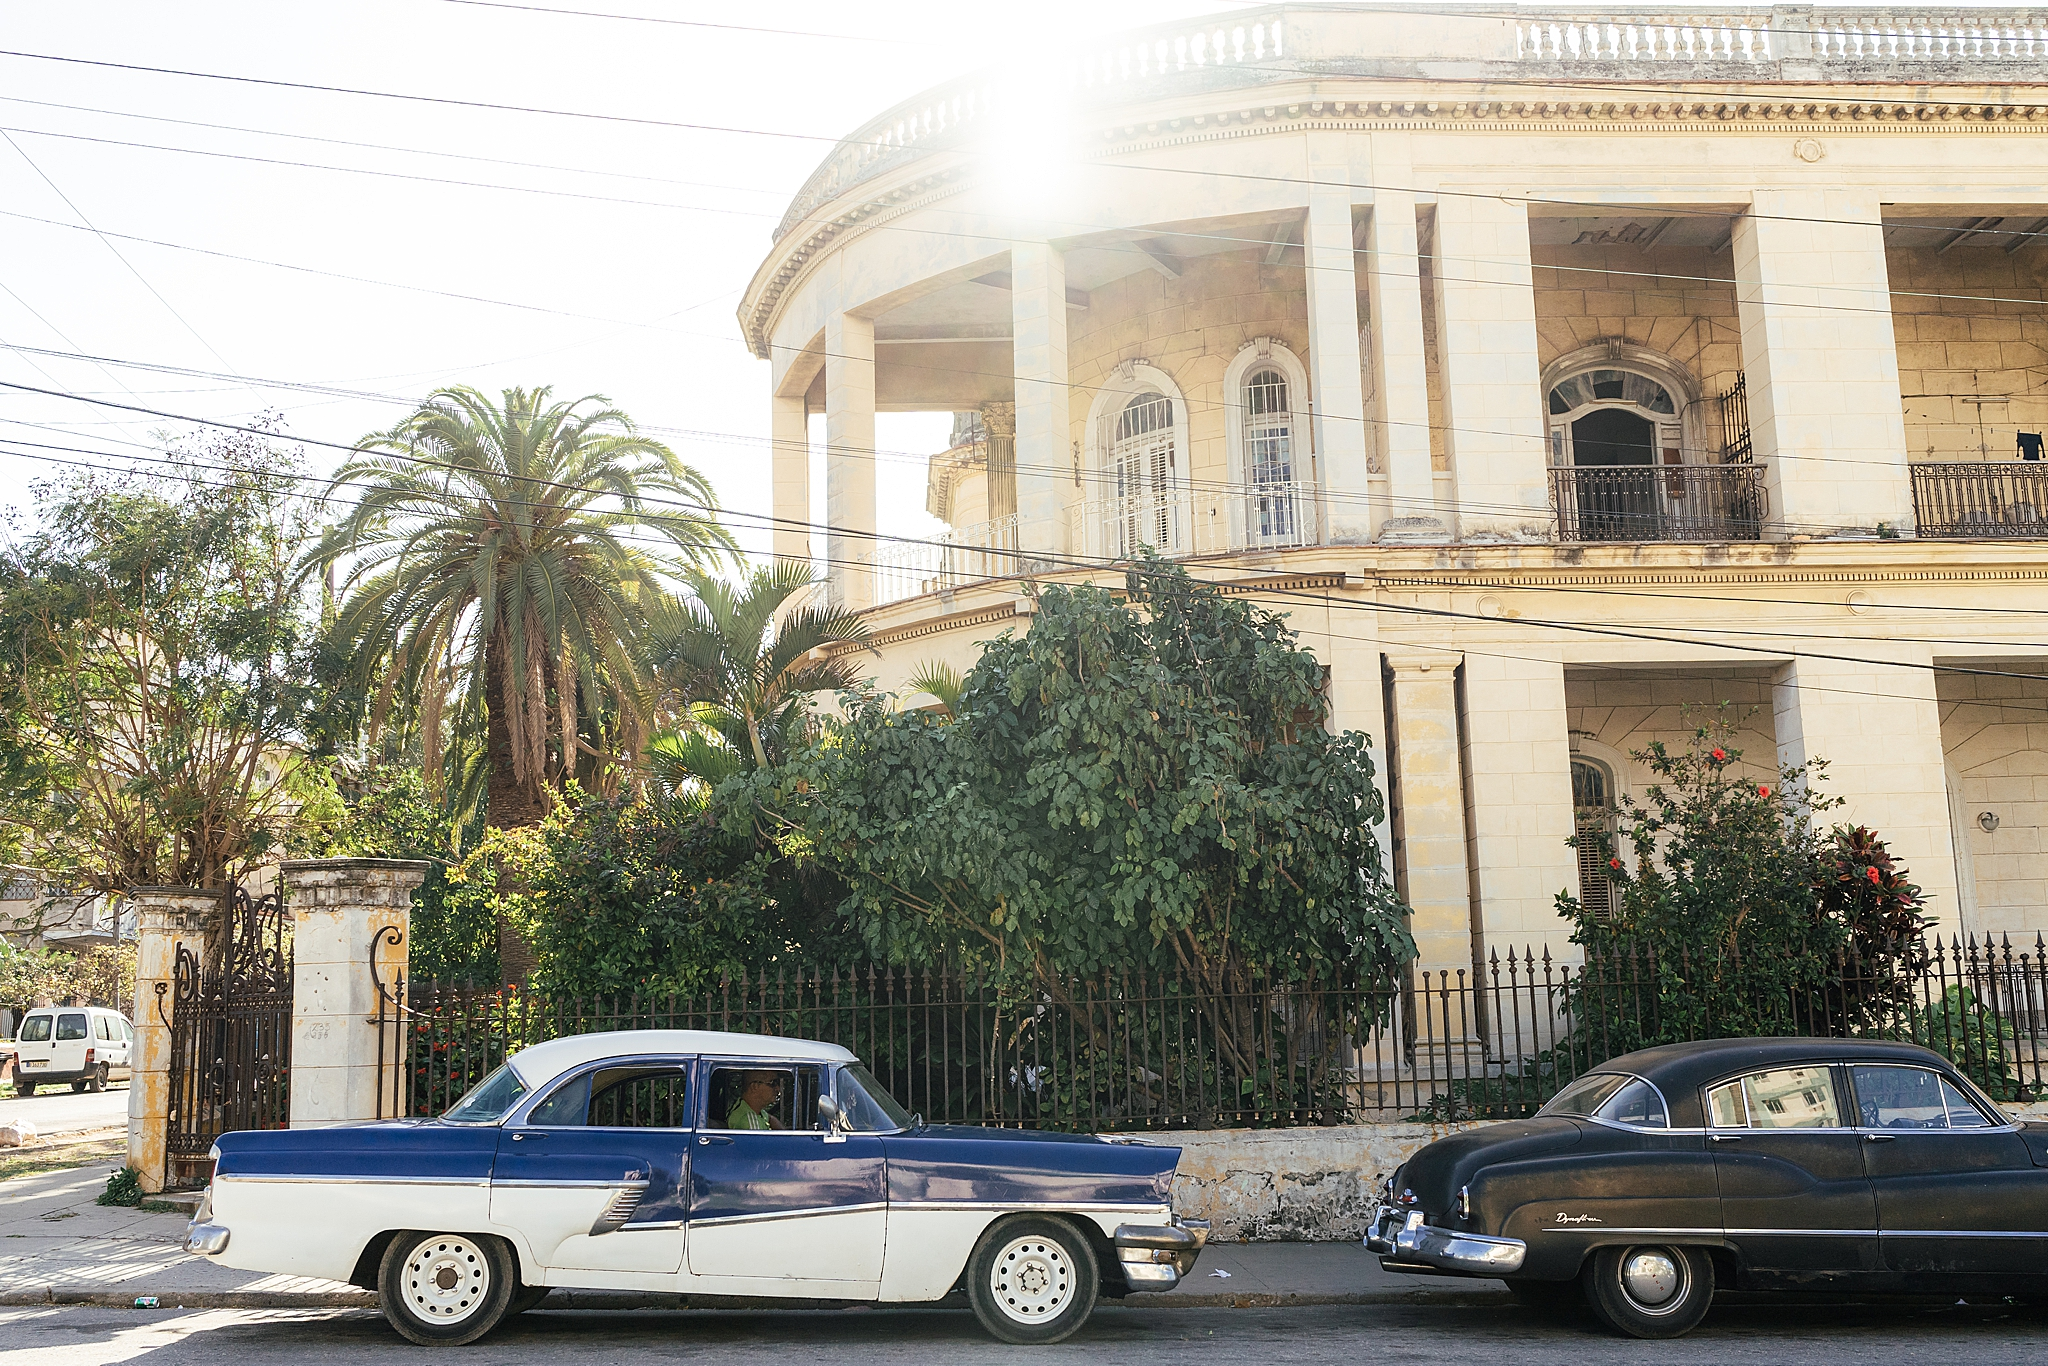 old cars and mansions of Havana Cuba